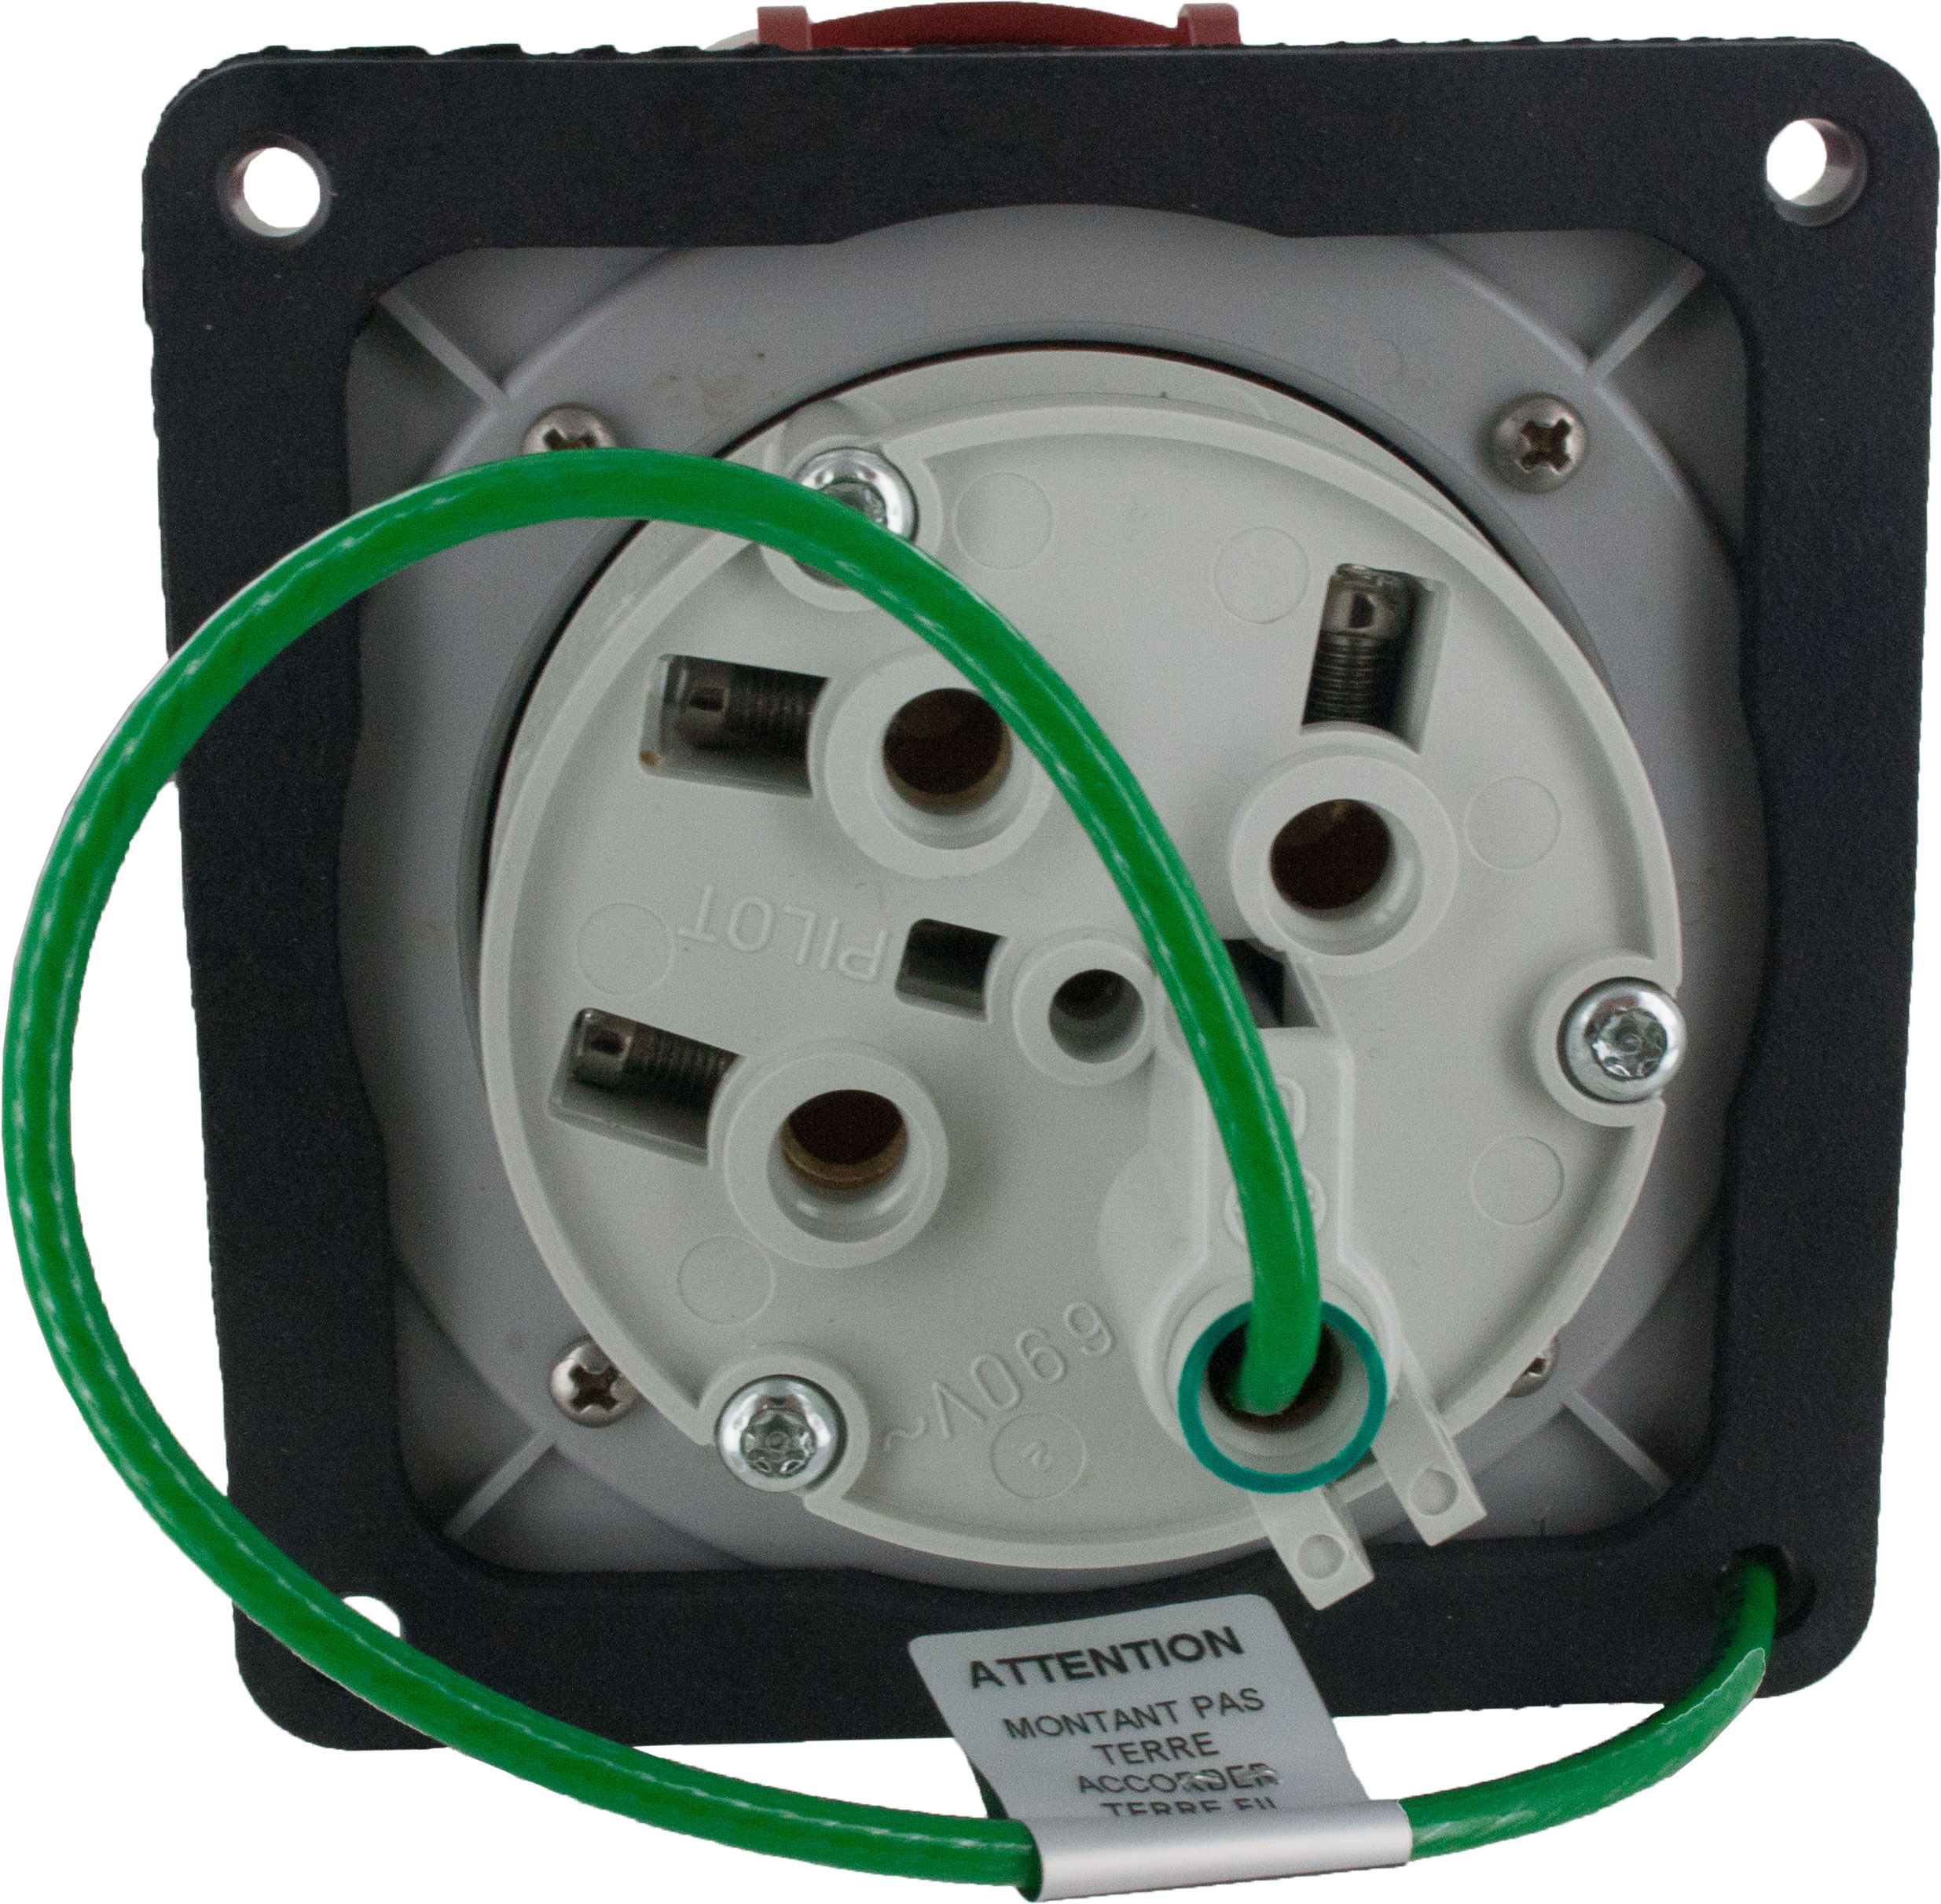 460R7W Pin And Sleeve Receptacle 60 Amp 3 Pole 4 Wire   ElecDirect